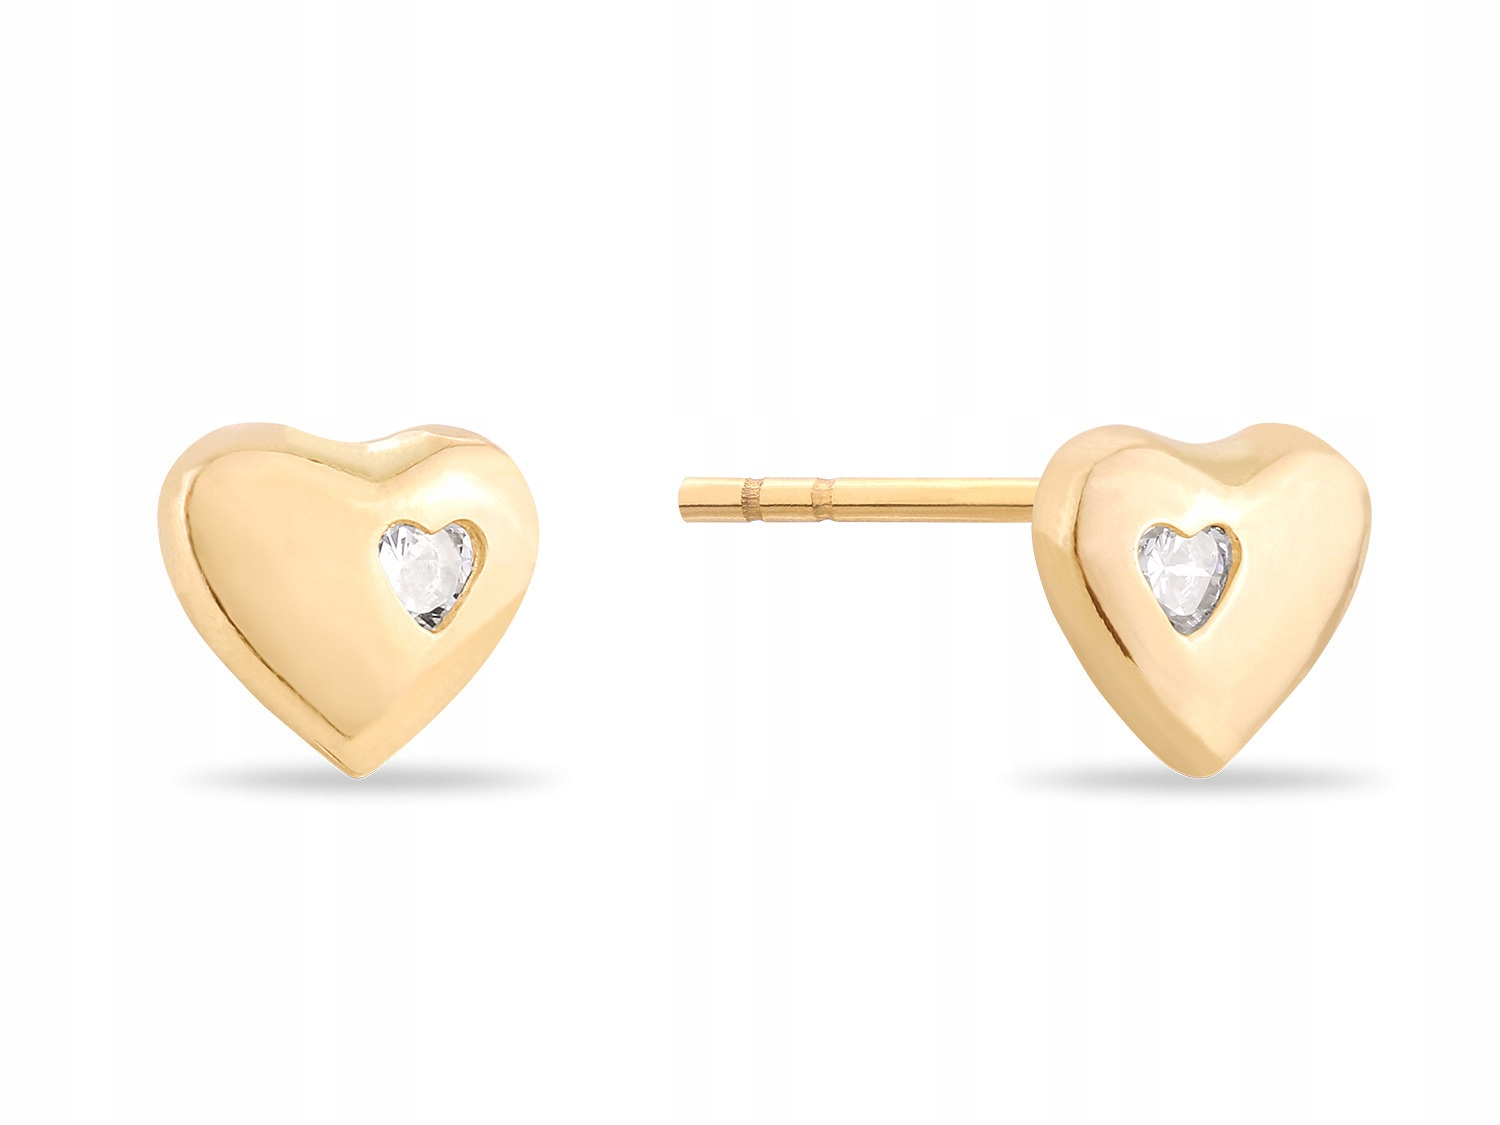 Item 585 gold earrings for girls HEART 6mm